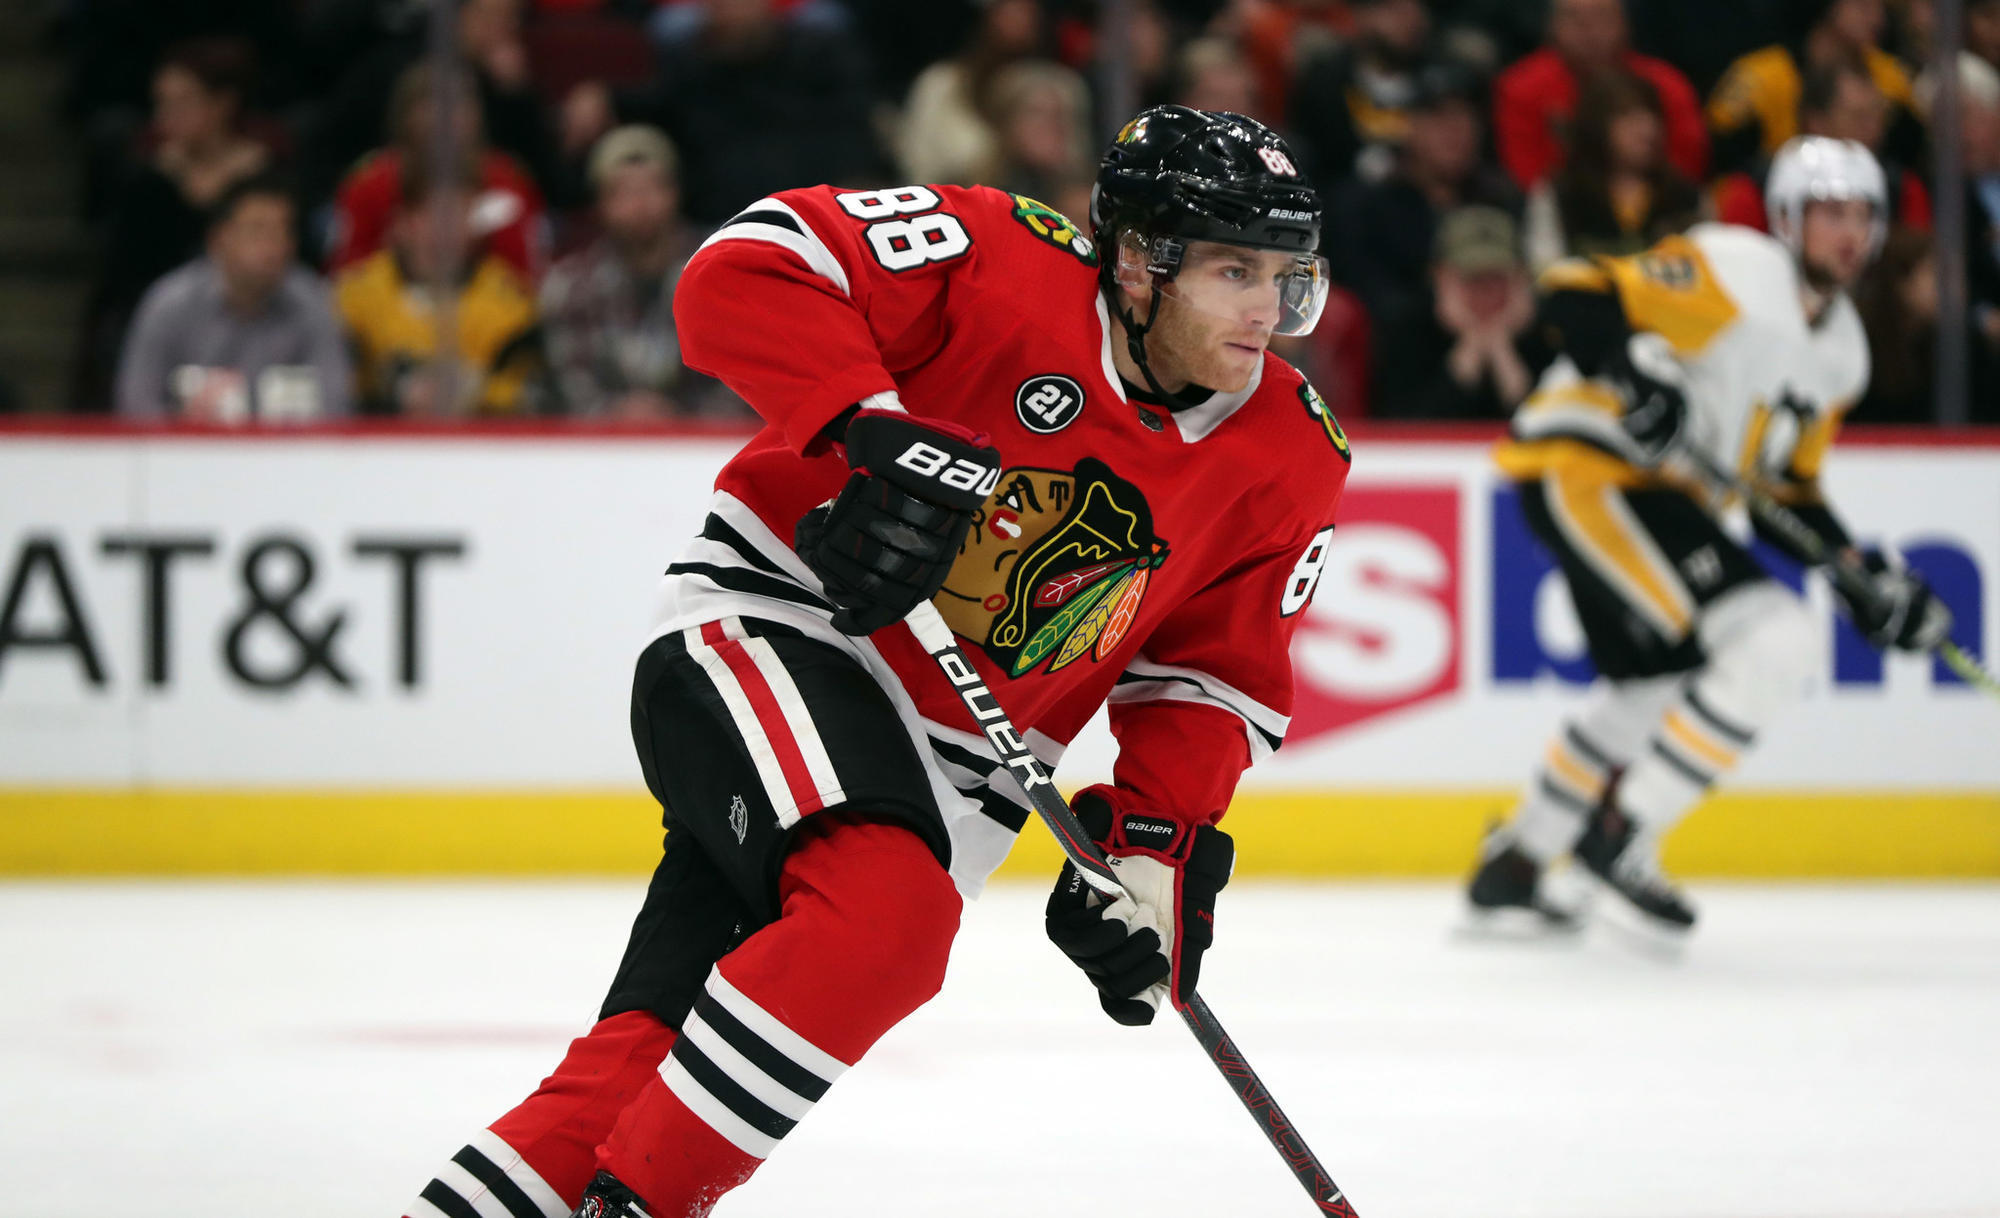 16be23ad5f4 Blackhawks Q&A: Is Patrick Kane skating at top speed? What other ex-players  should get One More Shift?